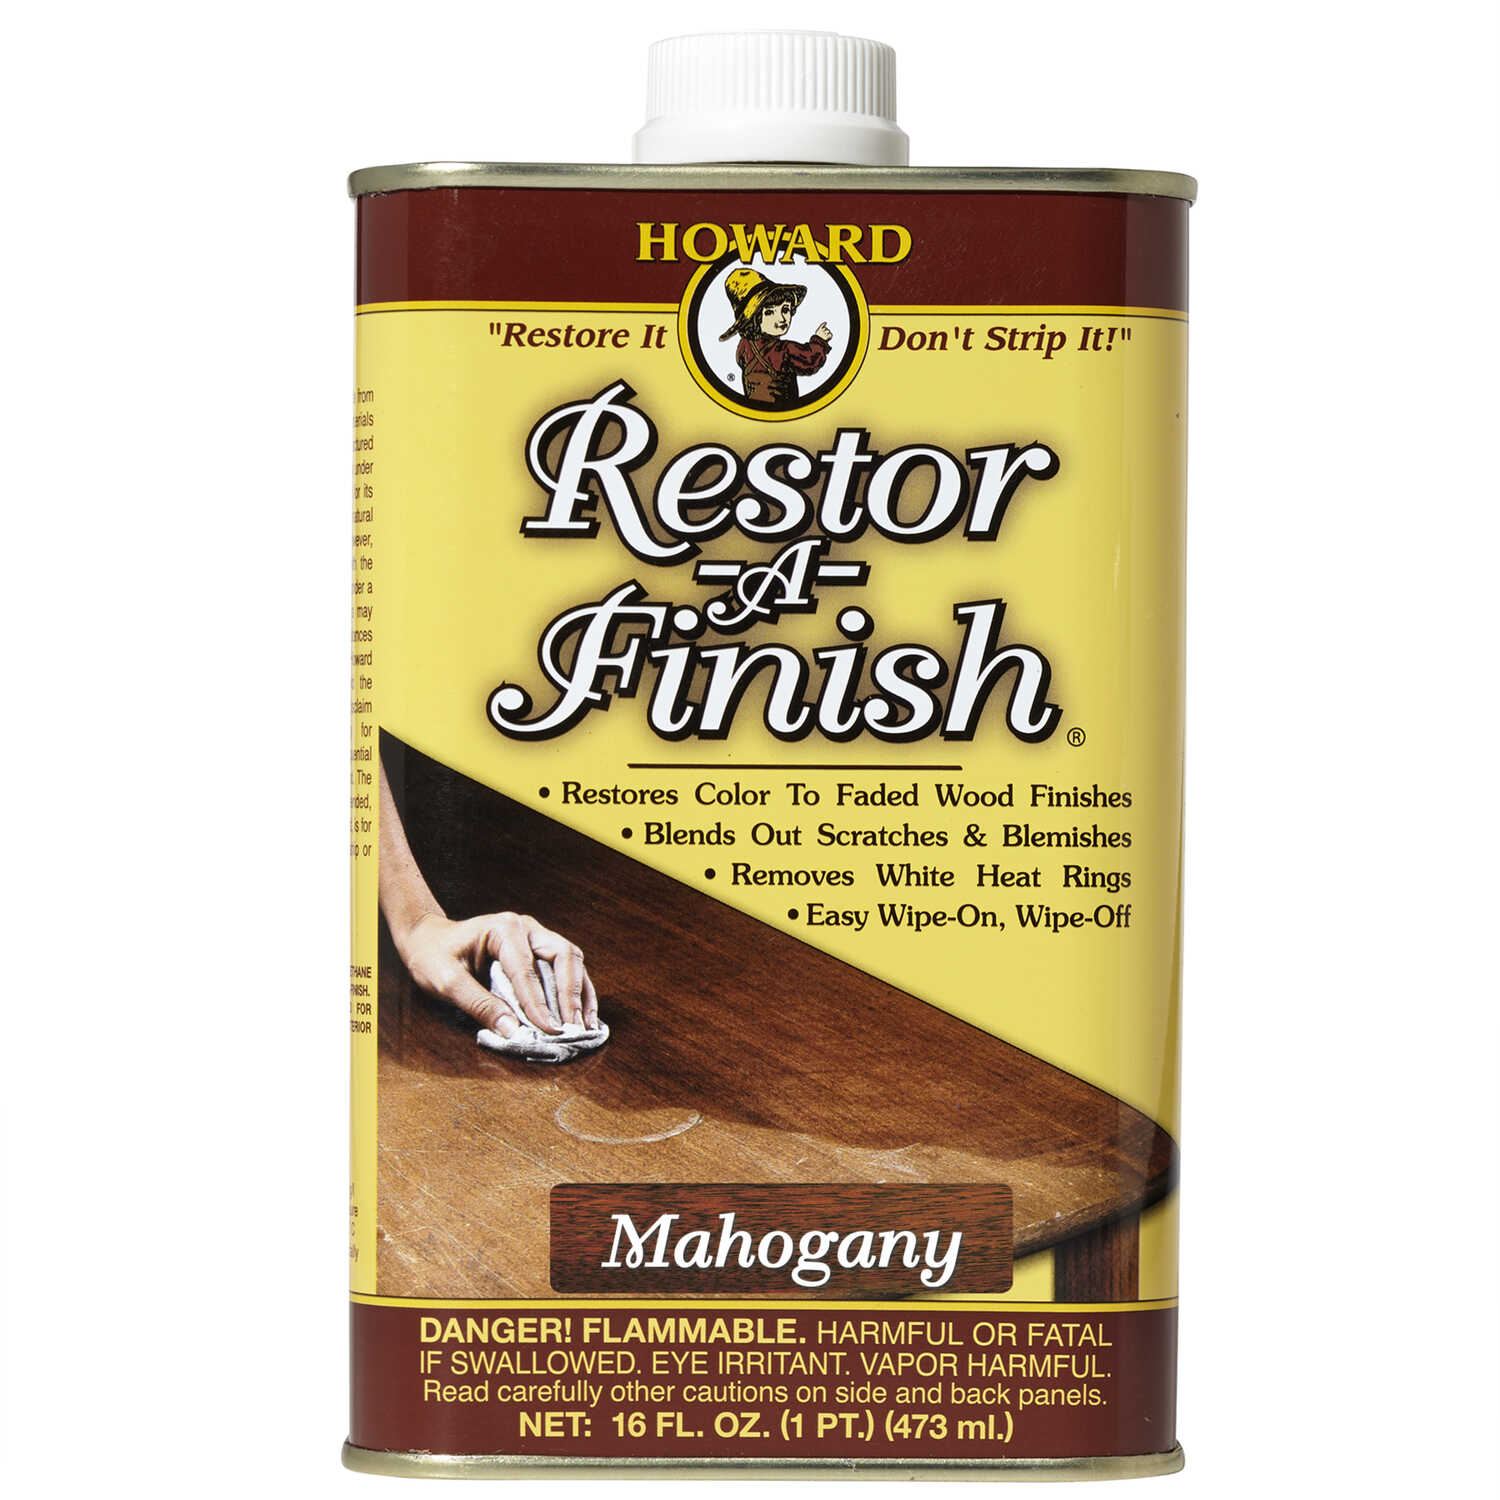 Howard  Restor-A-Finish  Semi-Transparent  Oil-Based  Mahogany  1 pt. Wood Restorer